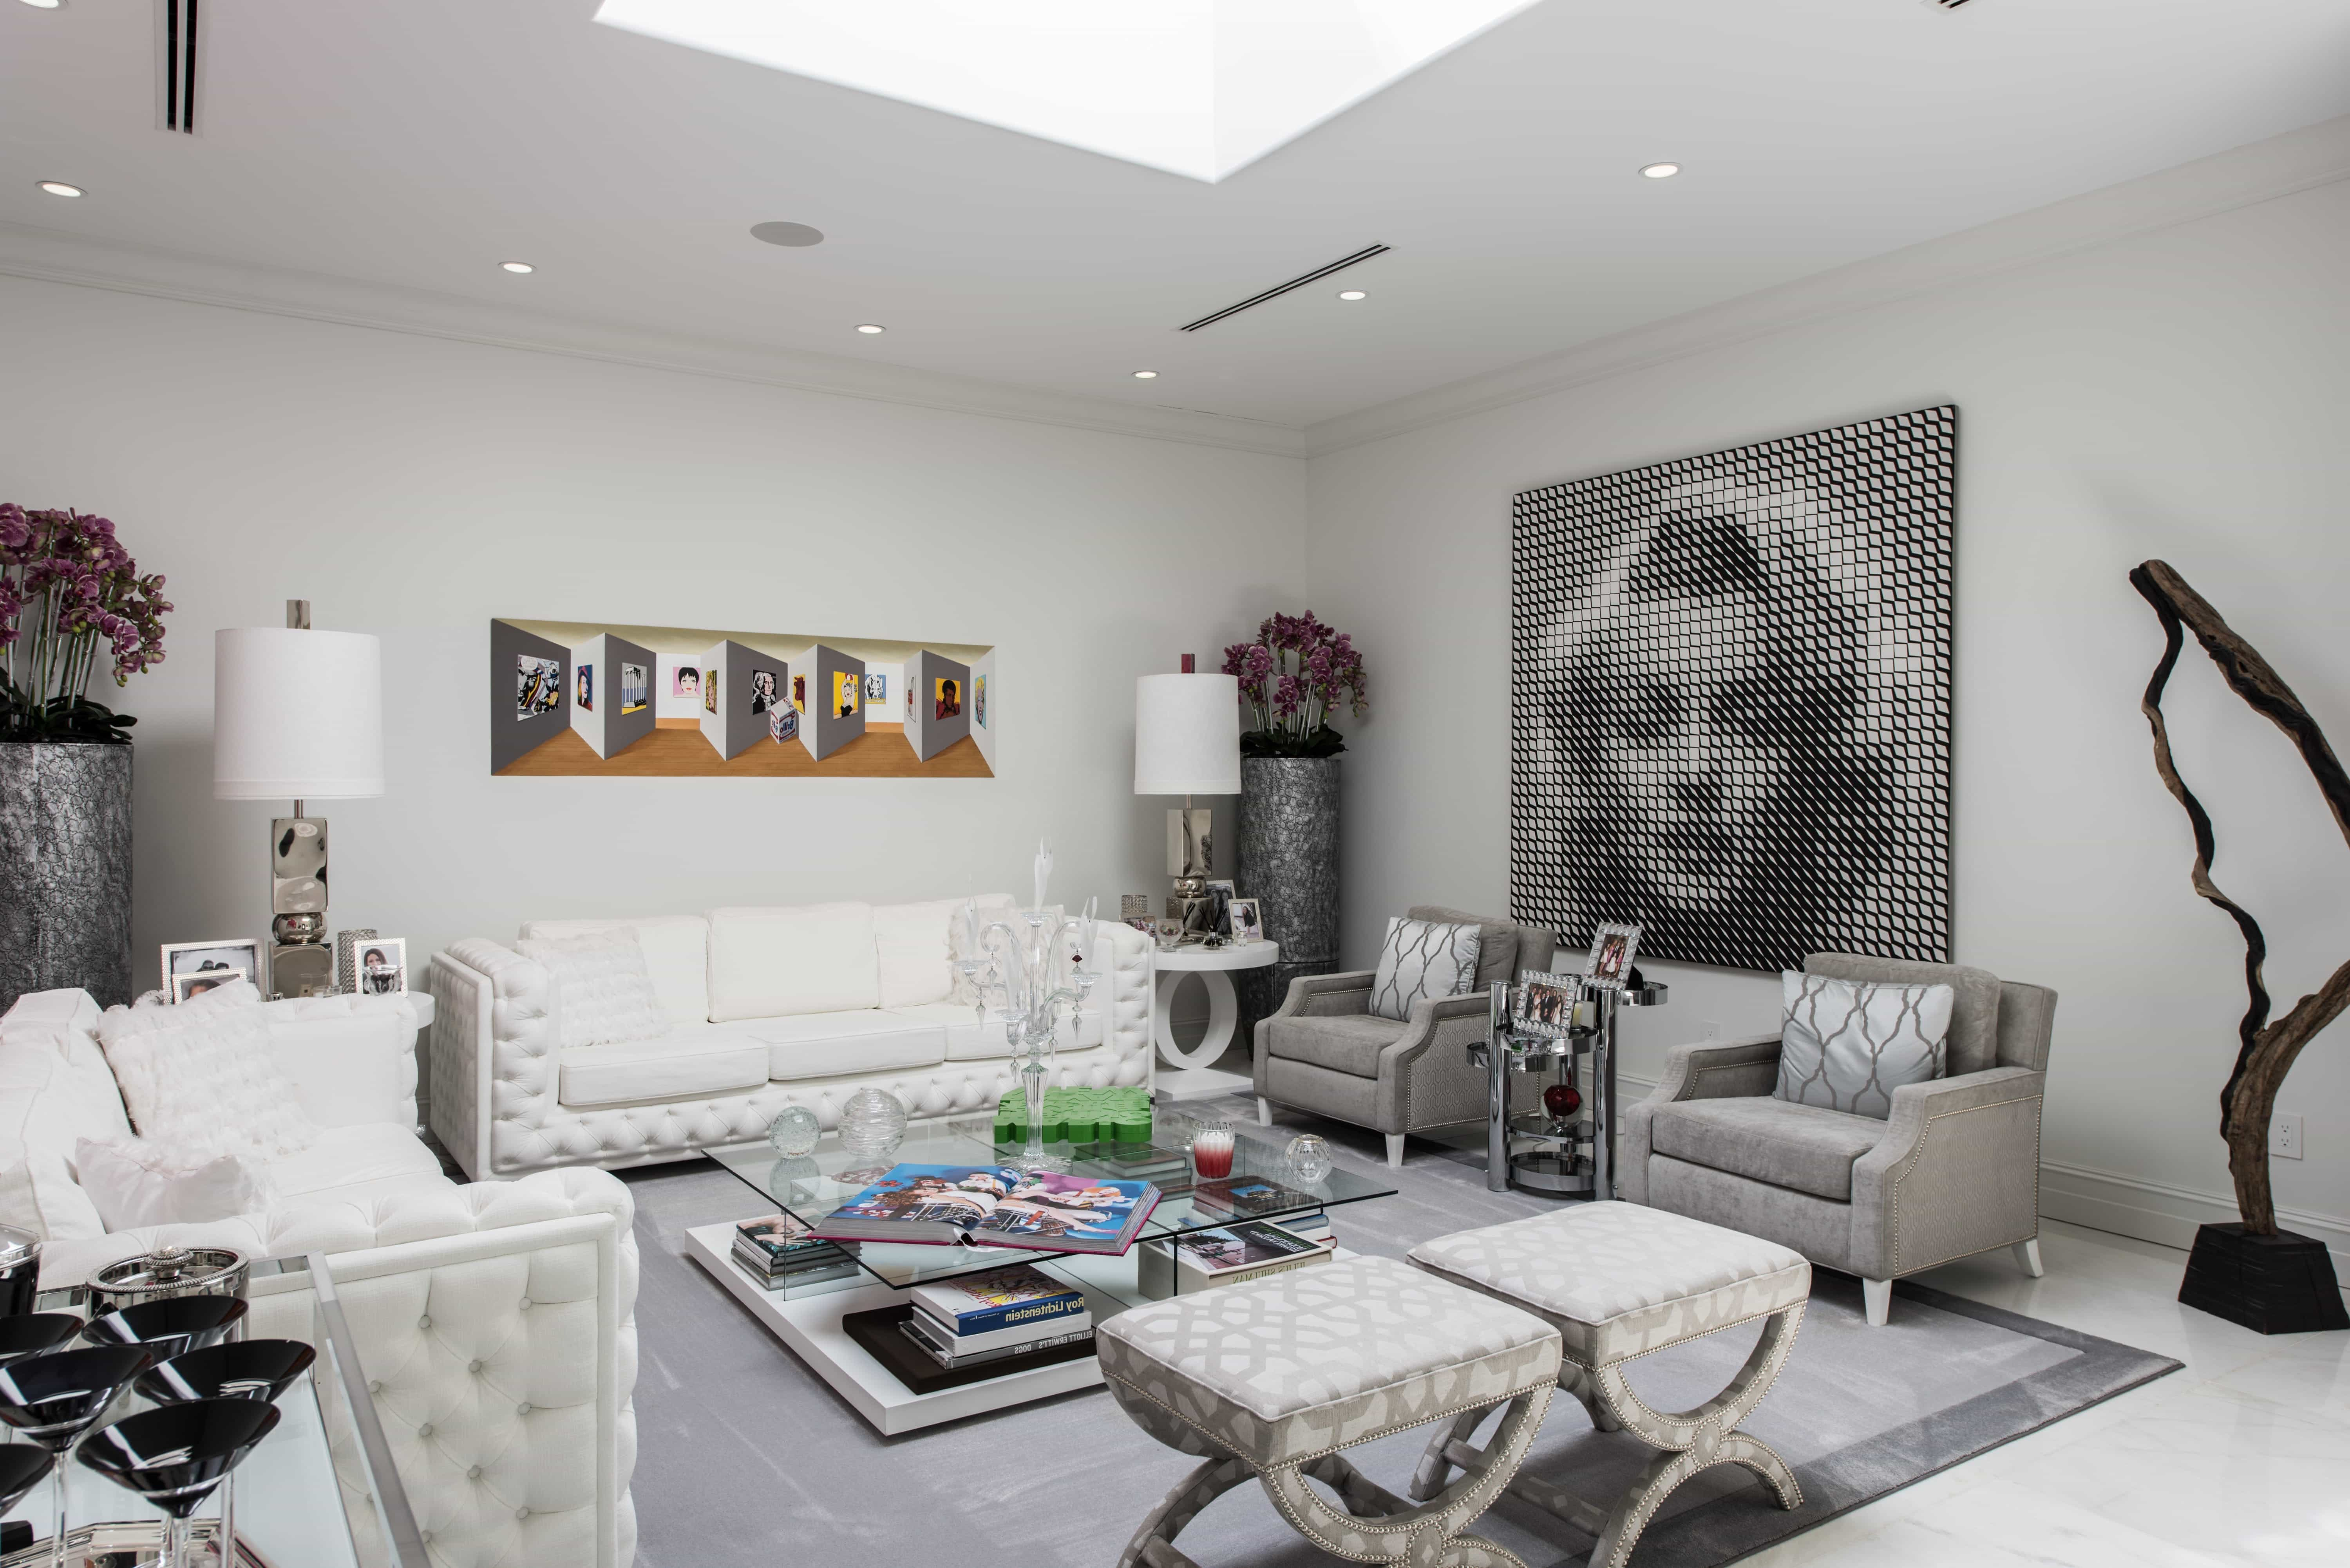 White And Gray Art Deco Living Room With Classic Grey Royal Sofa In Modern Style (Image 30 of 31)